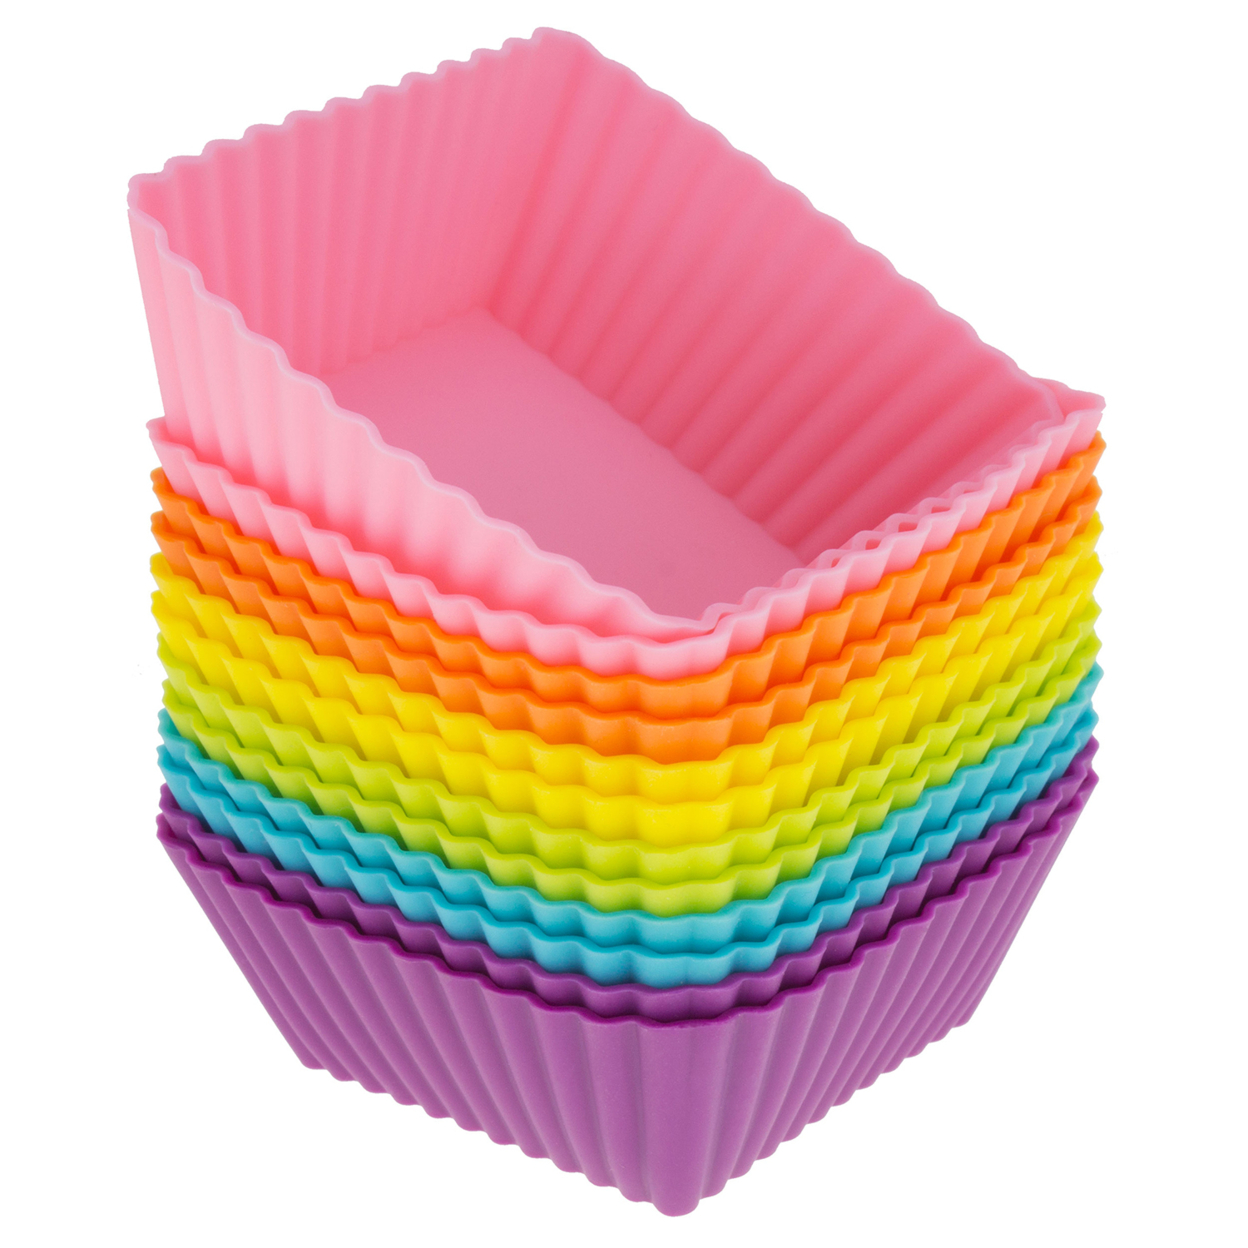 Freshware Silicone Cupcake Liners / Baking Cups - 12-Pack Muffin Molds, 2.5 inch Square, Six Vibrant Colors 554e30d17aaaaa6d388b463f